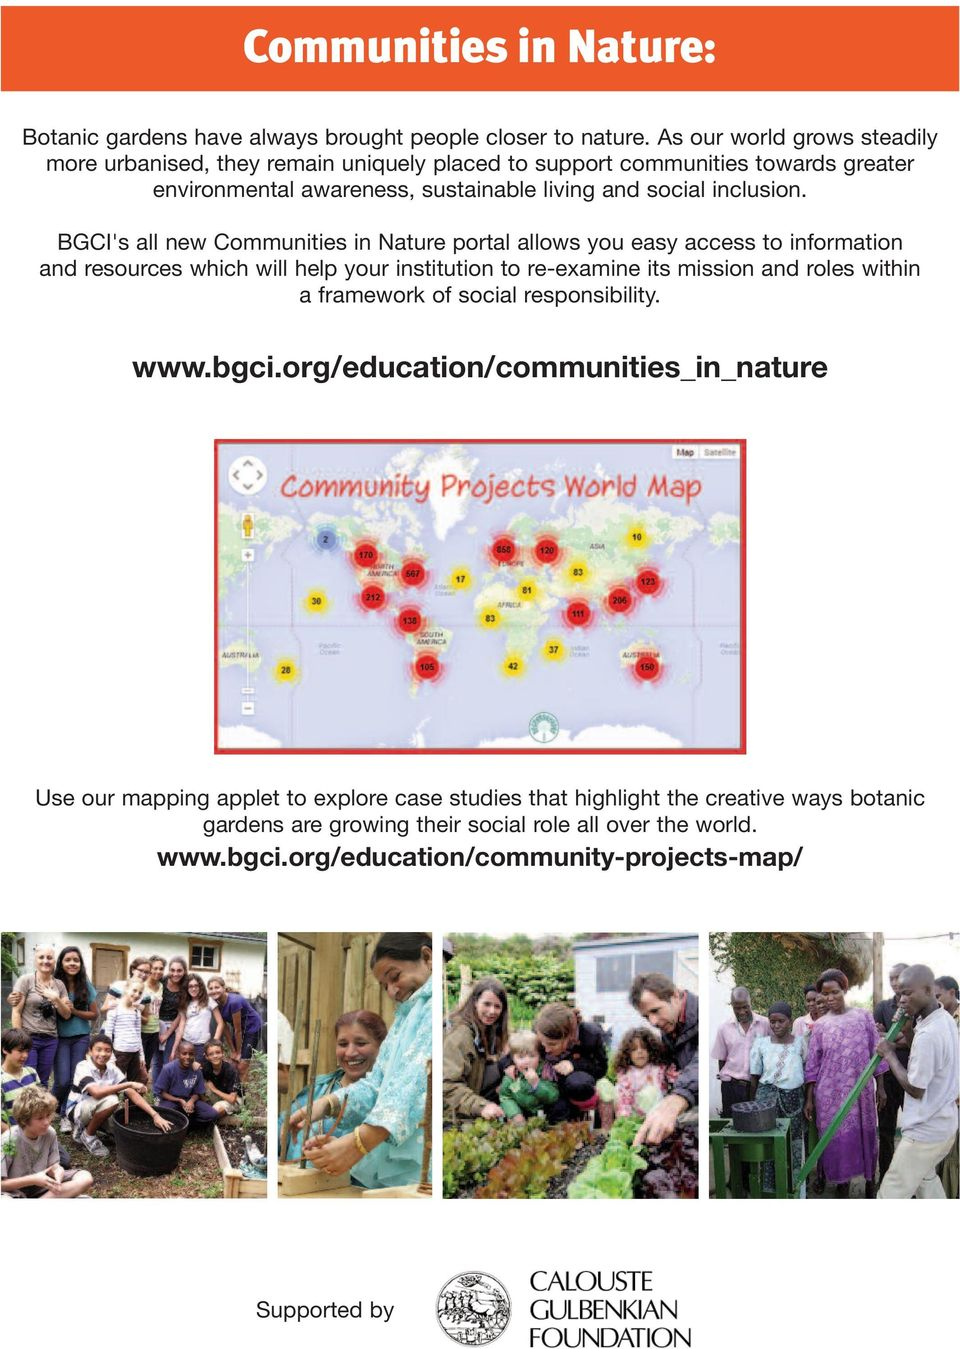 BGCI's all new Communities in Nature portal allows you easy access to information and resources which will help your institution to re-examine its mission and roles within a